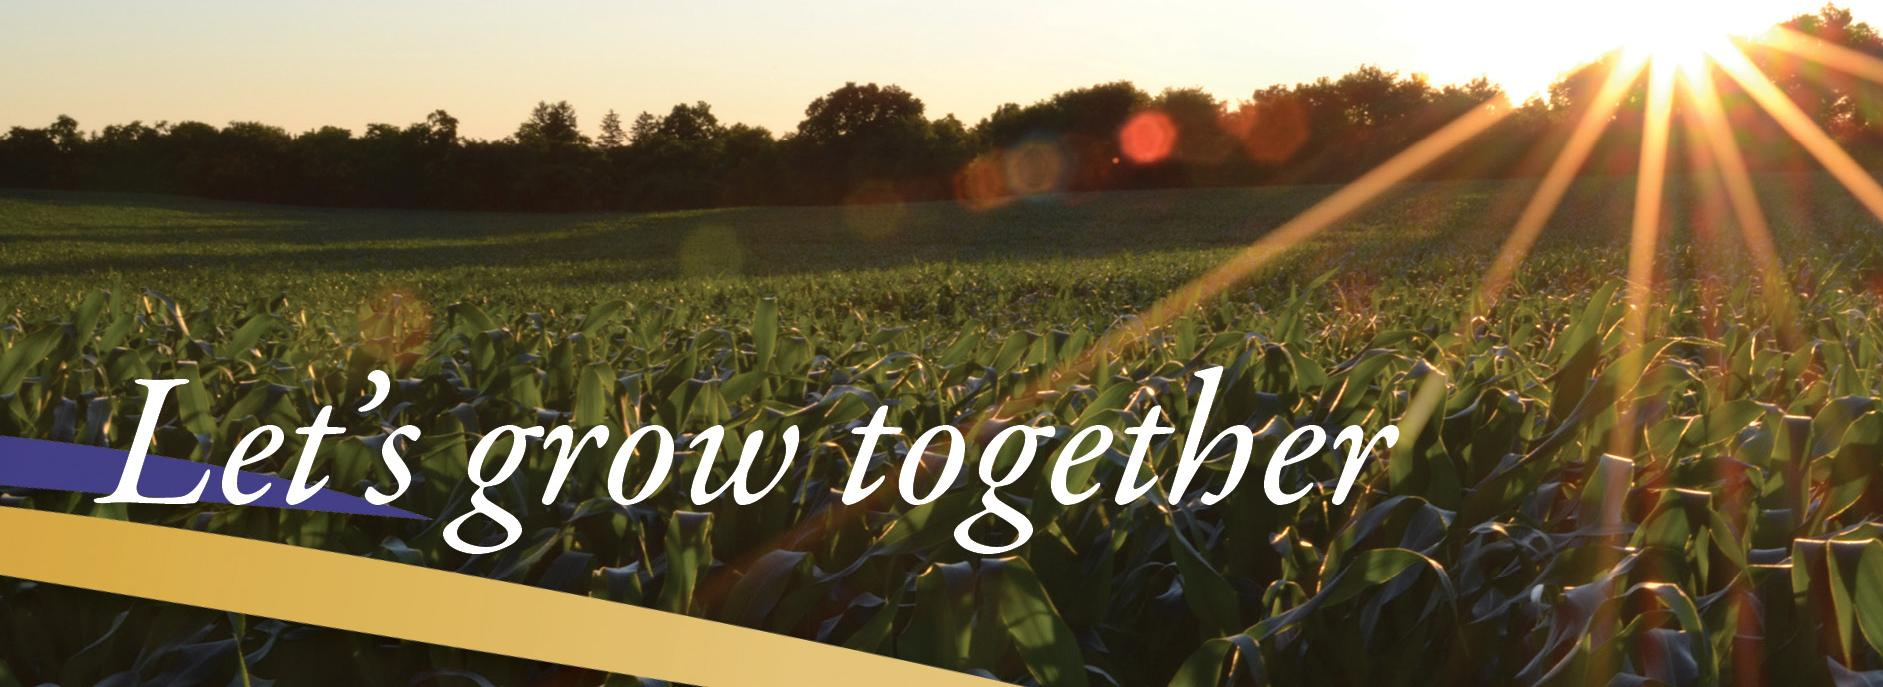 Let's grow together with picture of sun shining on a corn field